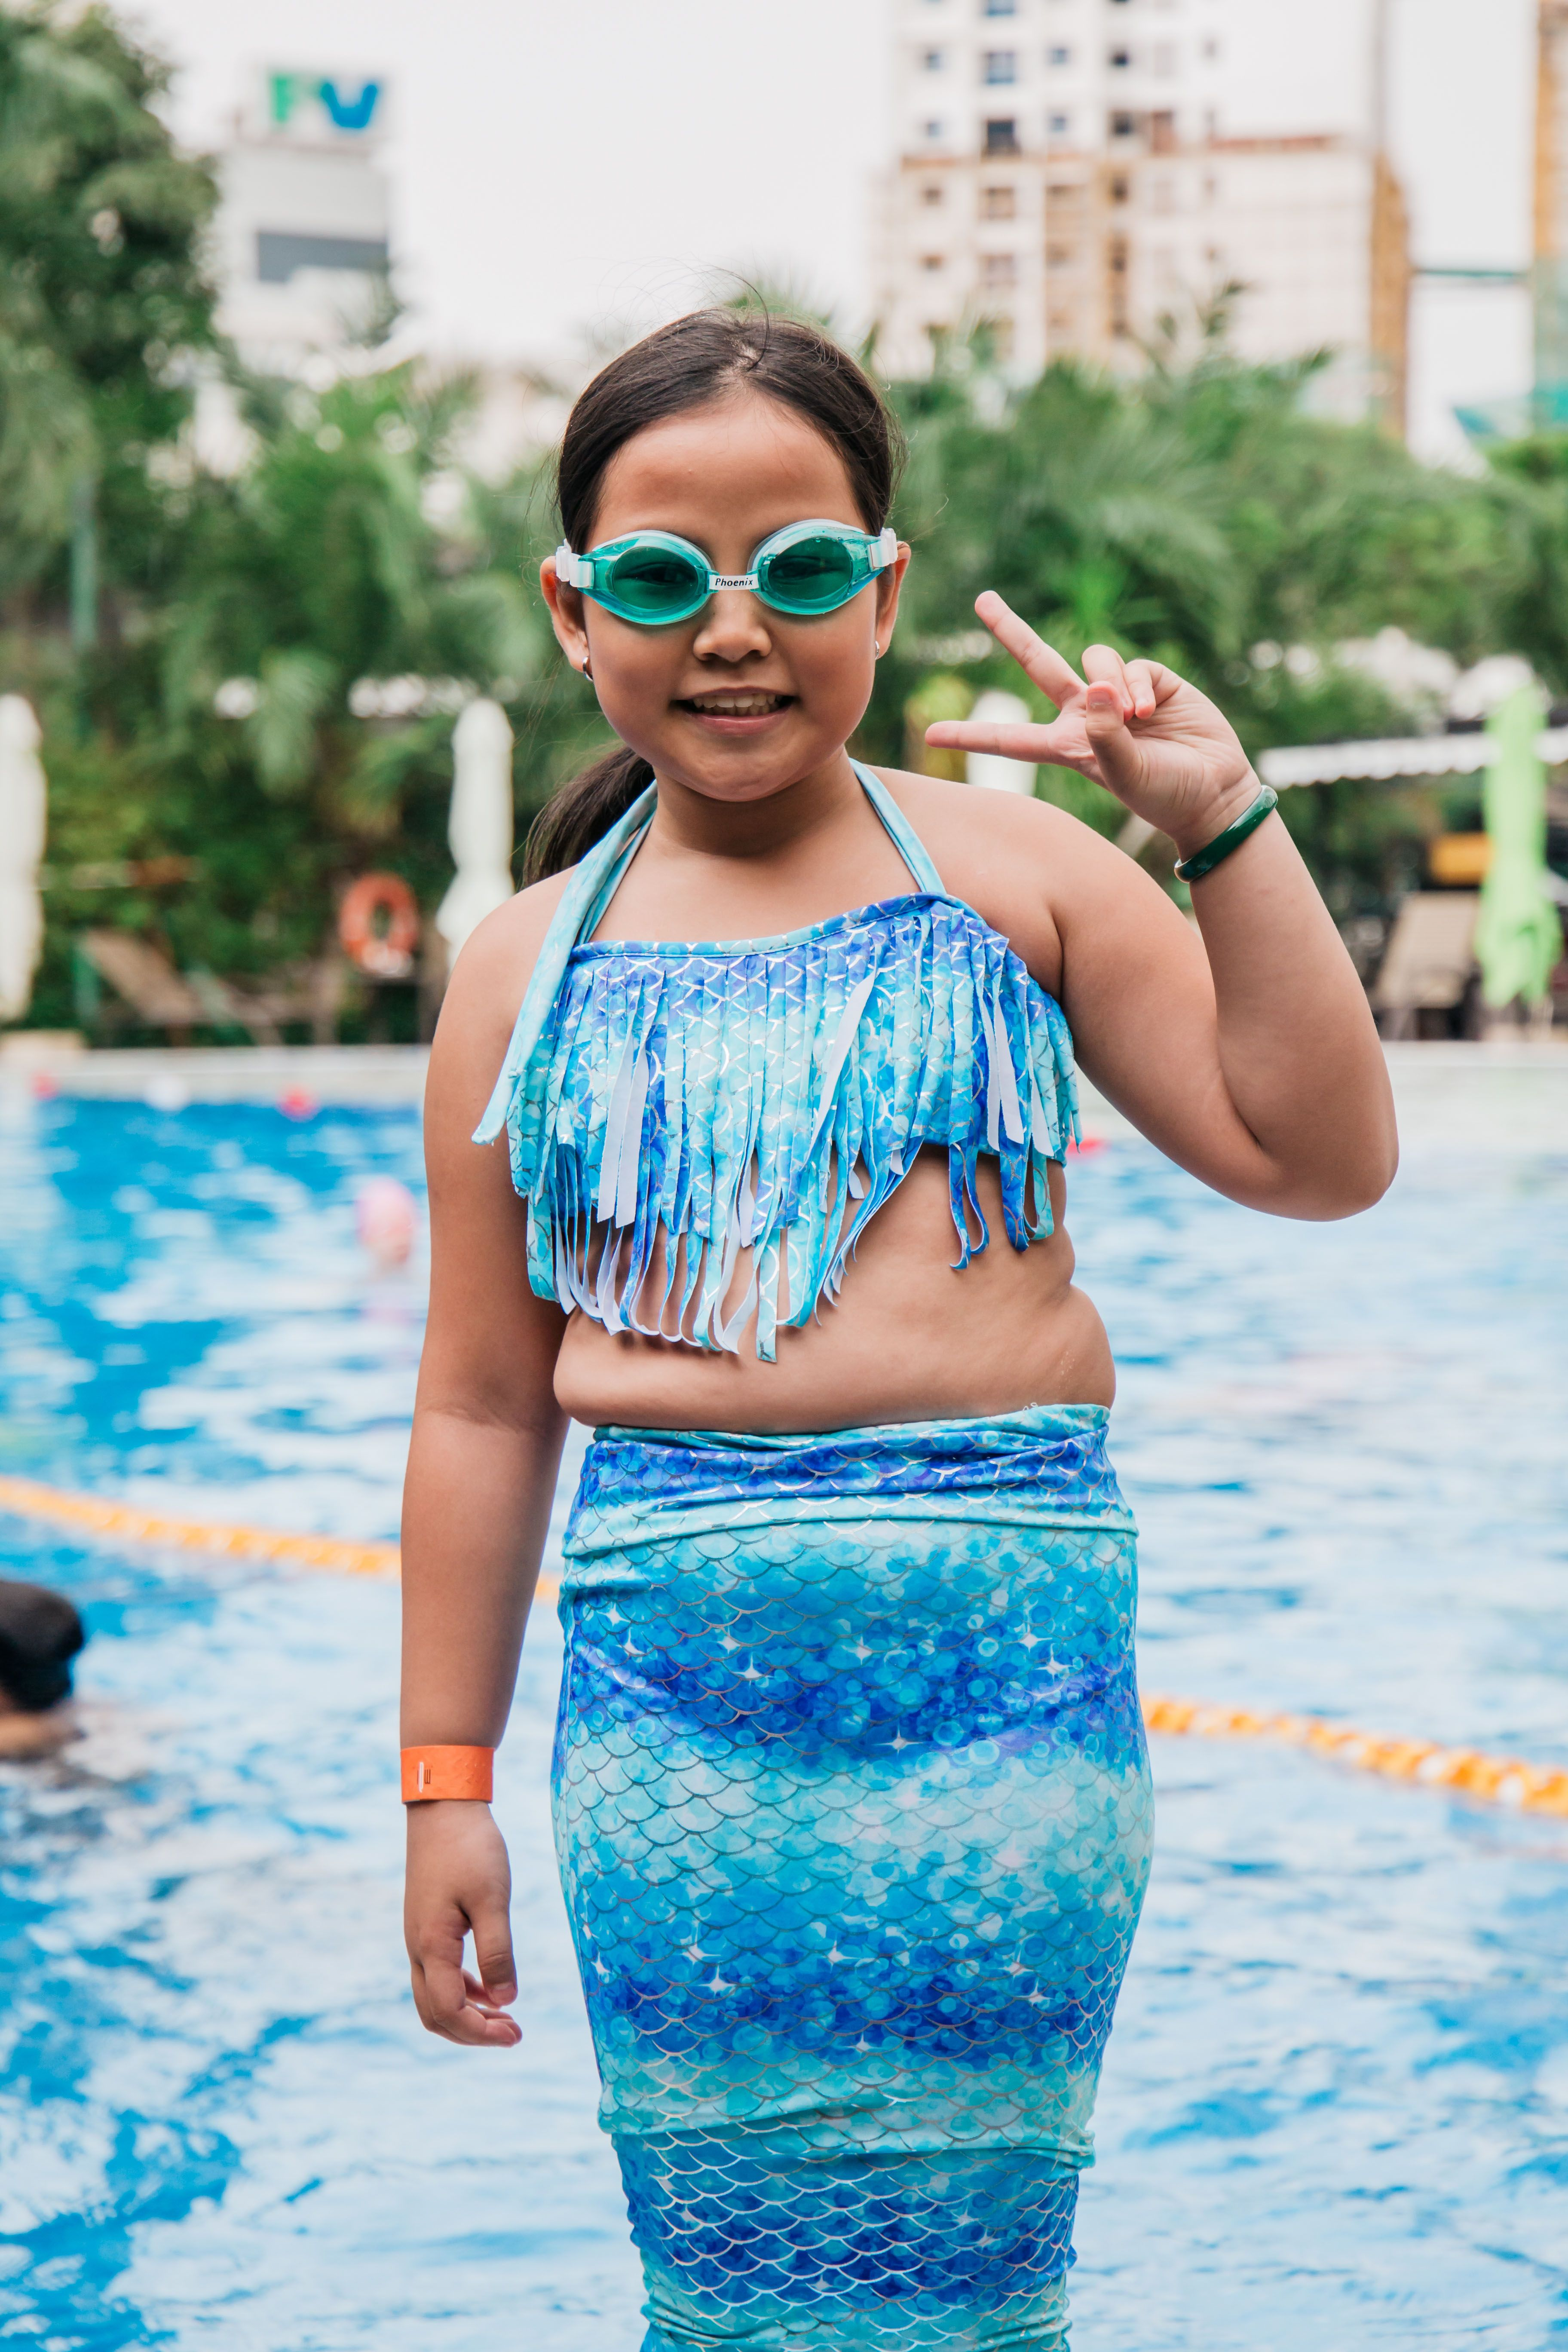 2018 Fairy Mermaid Swimsuit For Kids Girls Mermaid Tail With Flipper Beach Wear Suit Swimming Dress Cosplay Costumes Mother & Kids New